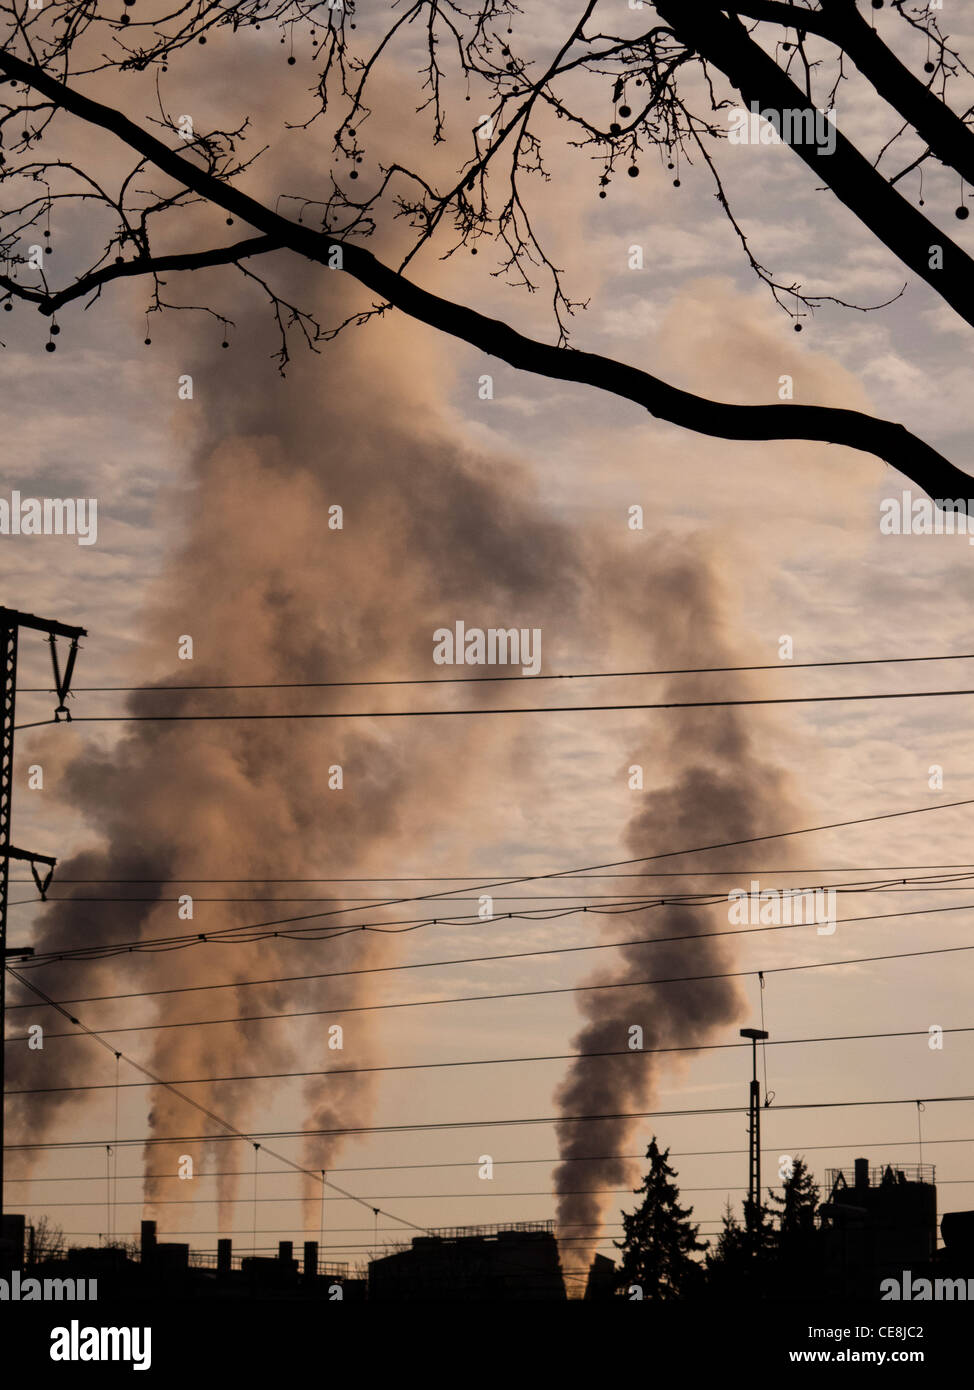 Air pollution,Singen,Baden-Wurttemberg,Germany - Stock Image